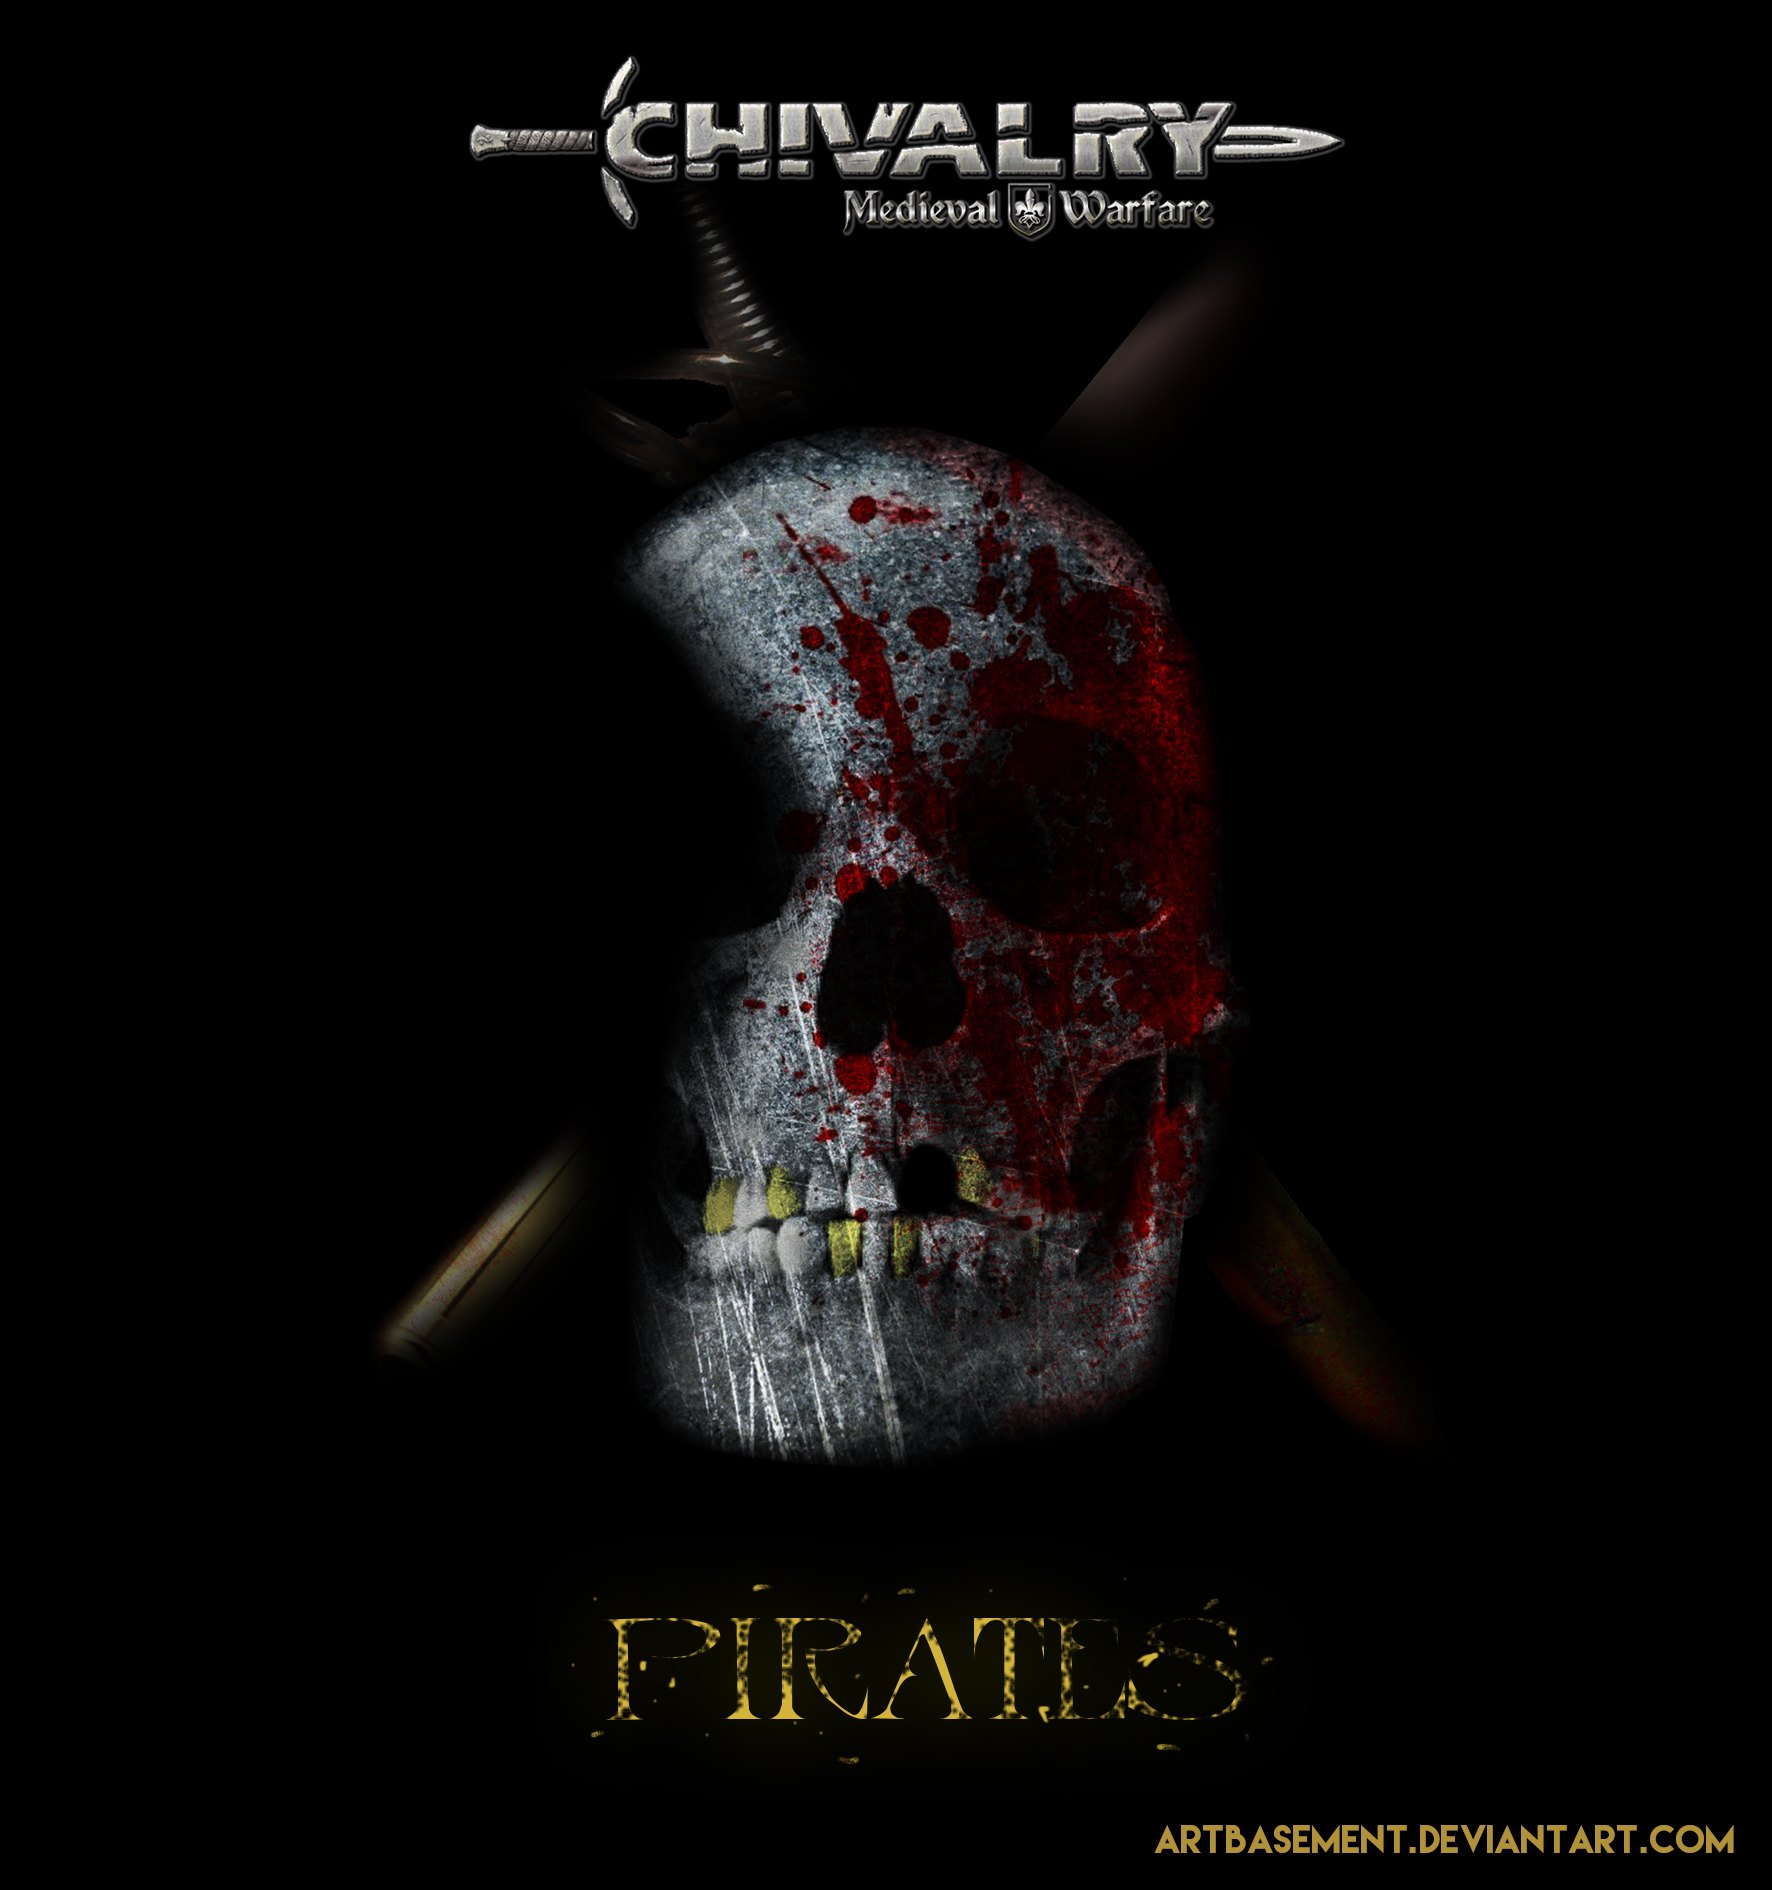 CHOOSE YOUR SIDE - Chivalry Medieval Warfare